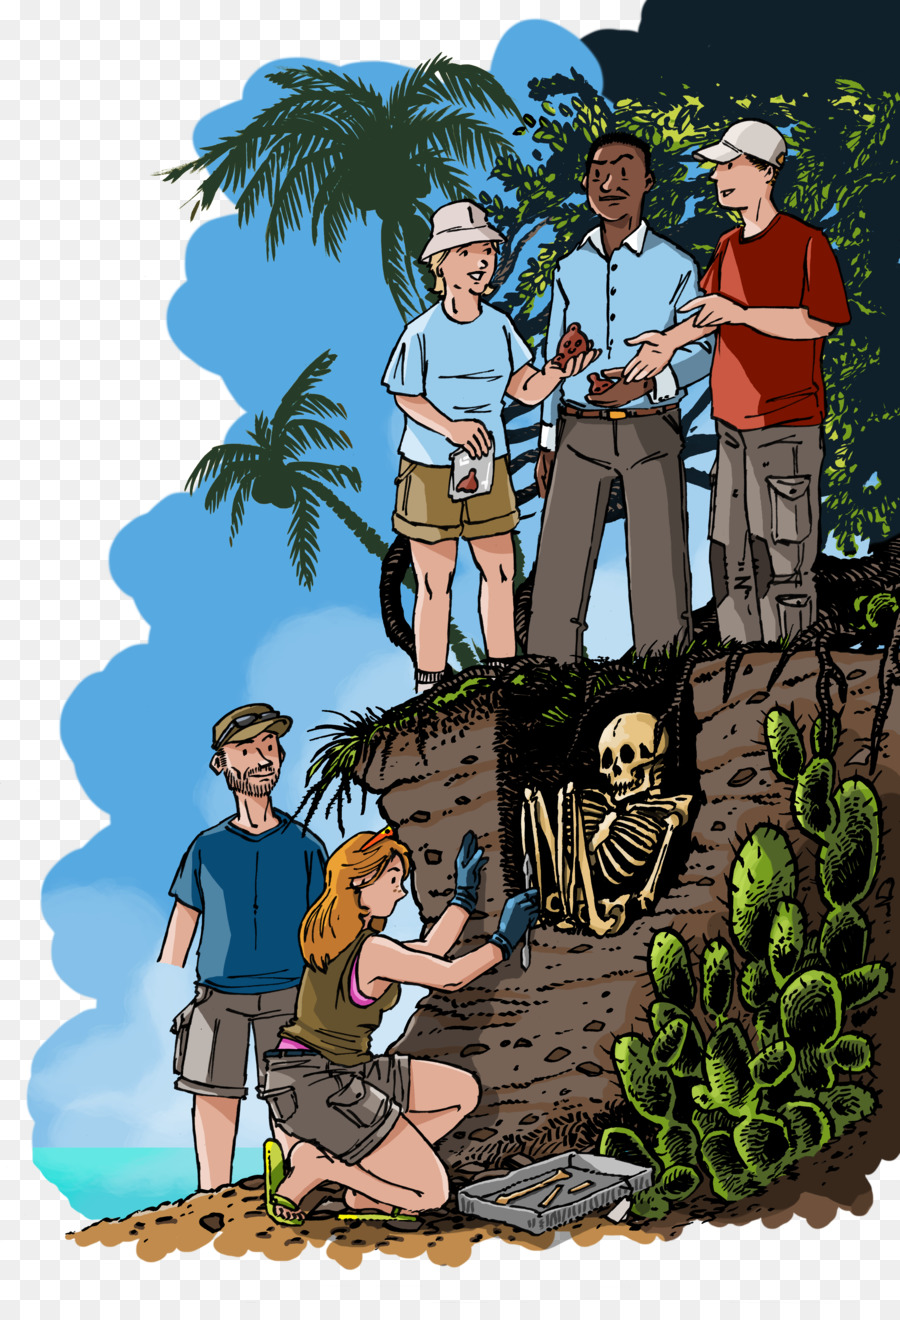 Cartoon Comics Field research Anthropology Clip art - Field Work Cliparts  png download - 3507*5078 - Free Transparent Cartoon png Download.